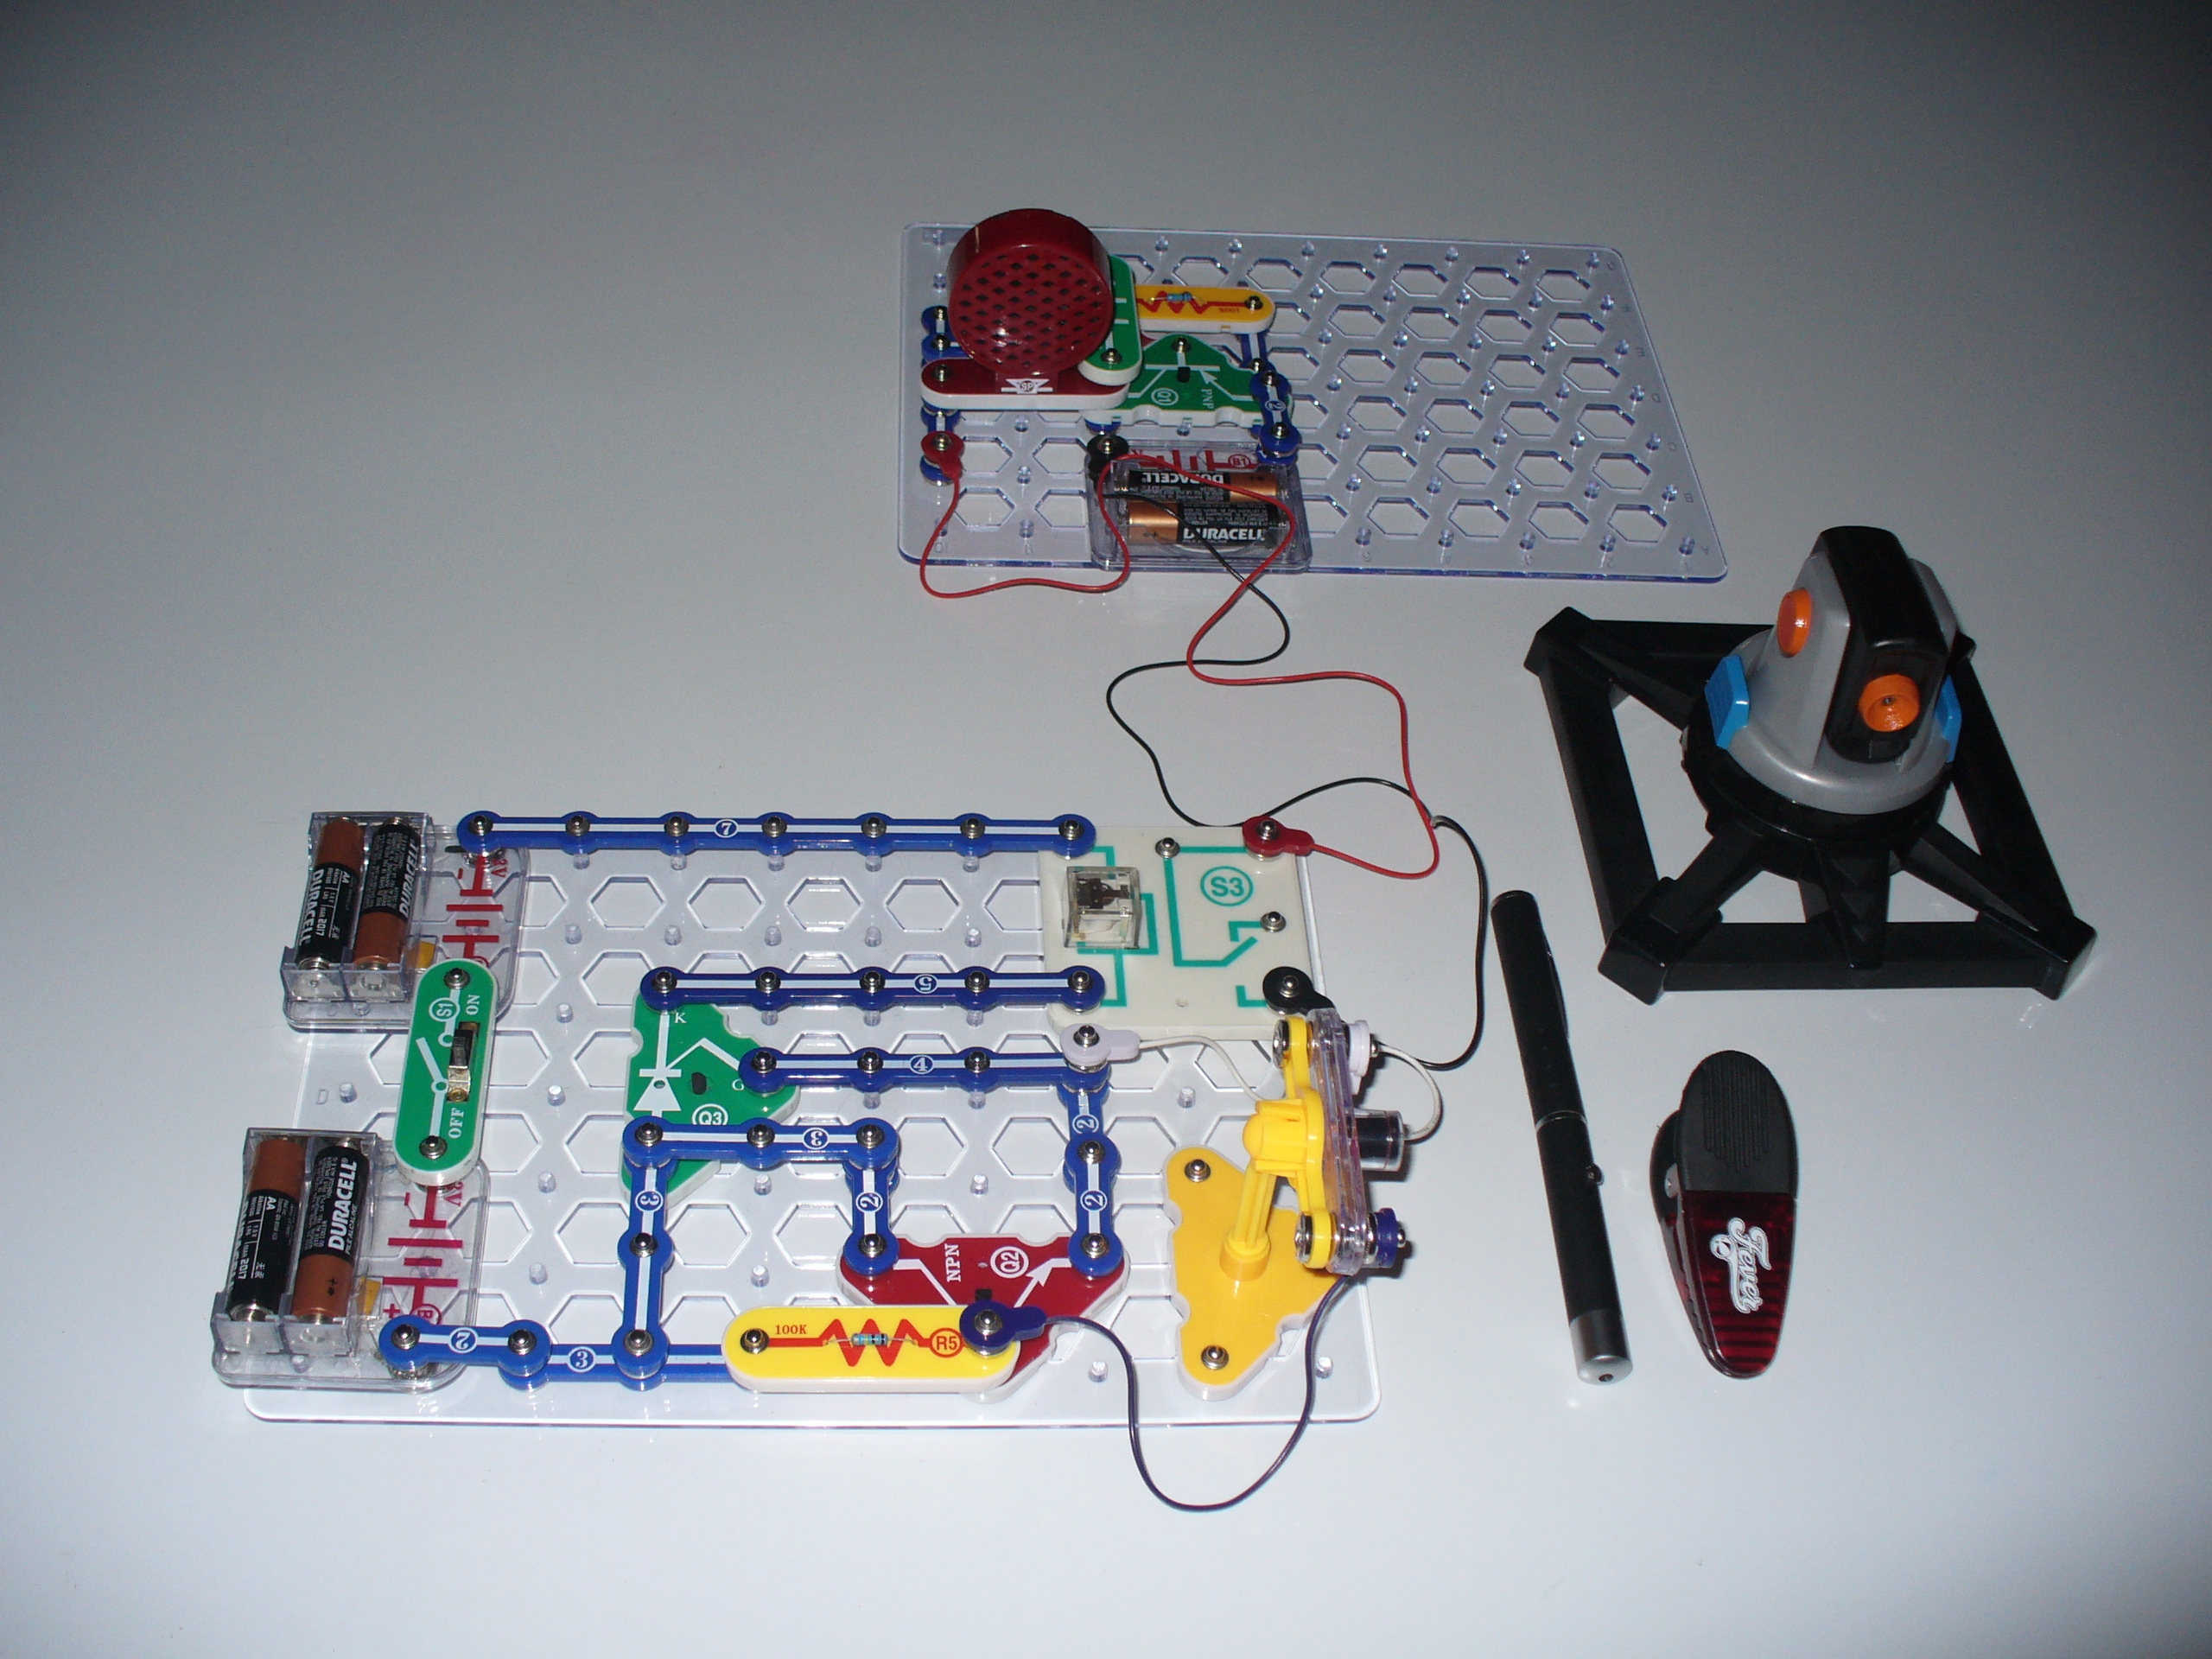 Laser Tripwire And Alarm Using Snap Circuits Make Burglar System An Scr Based Circuit Diagram